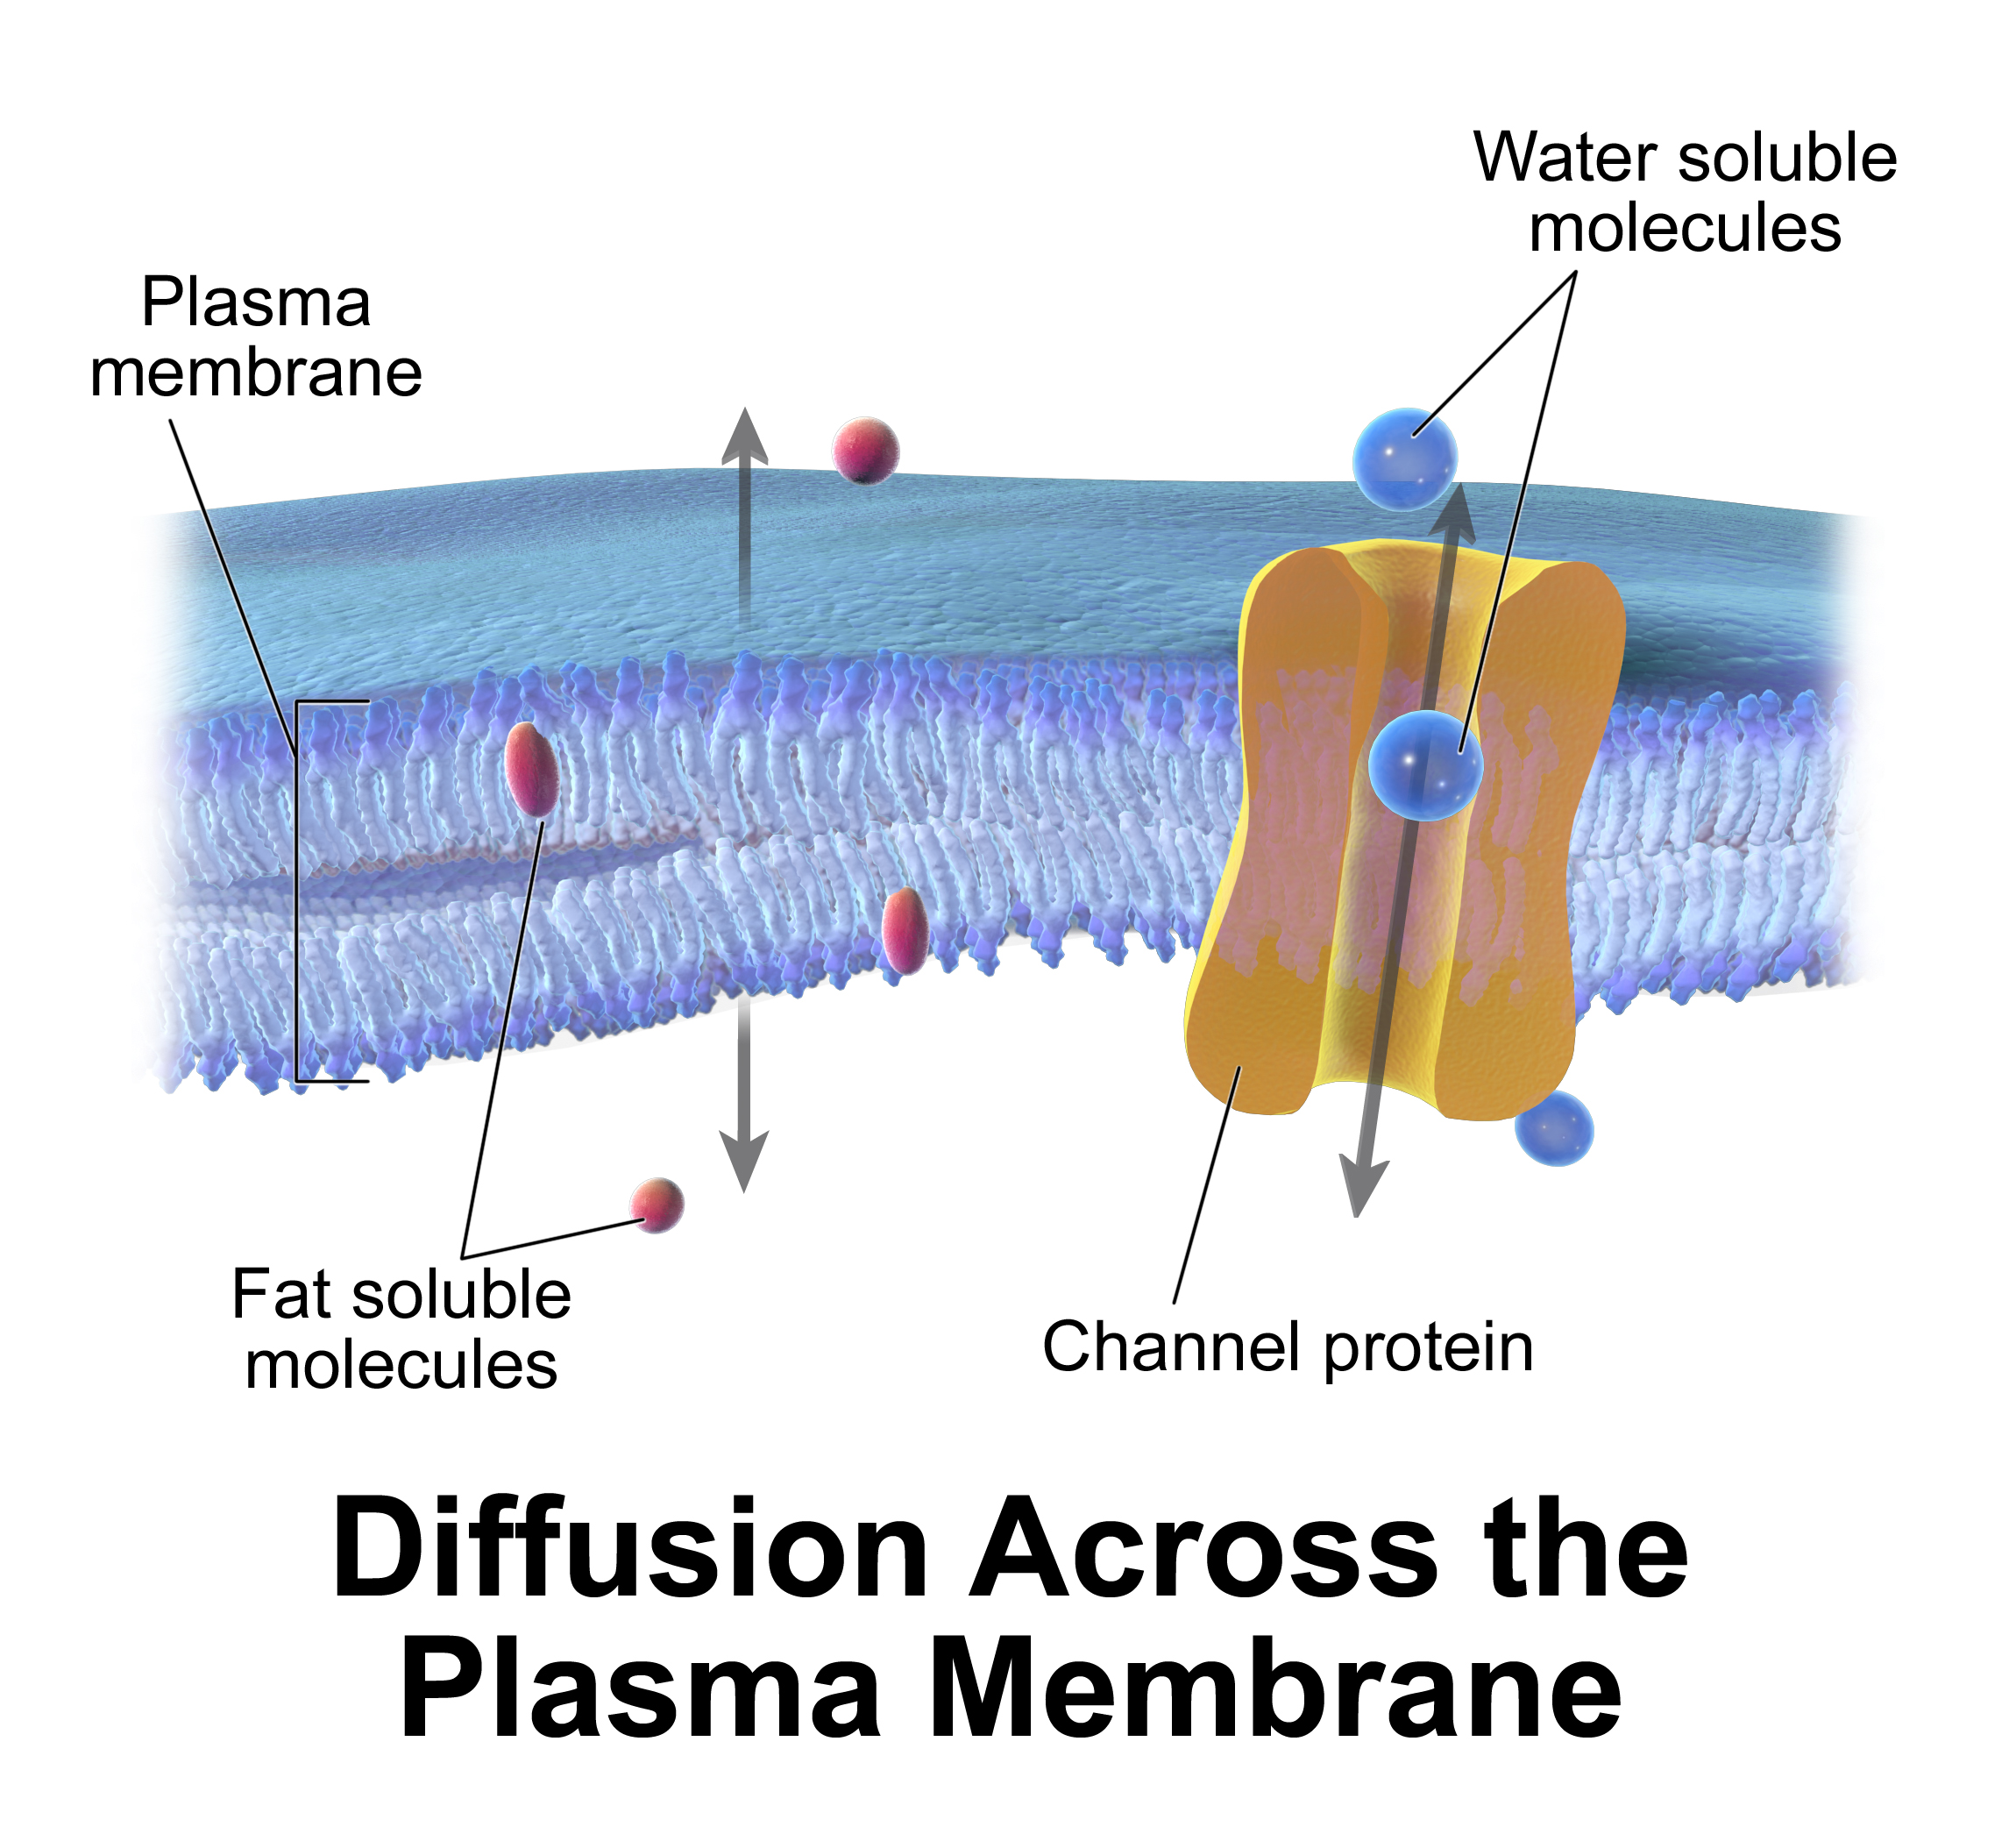 osmosis across a non living membrane During osmosis, the diffusion of water molecules down a concentration gradient occurs across a semi-permeable membrane a semi–permeable membrane is a membrane which allows some materials to pass through while rejecting others this is true of the plasma membrane surrounding all living cells dialysis tubing.